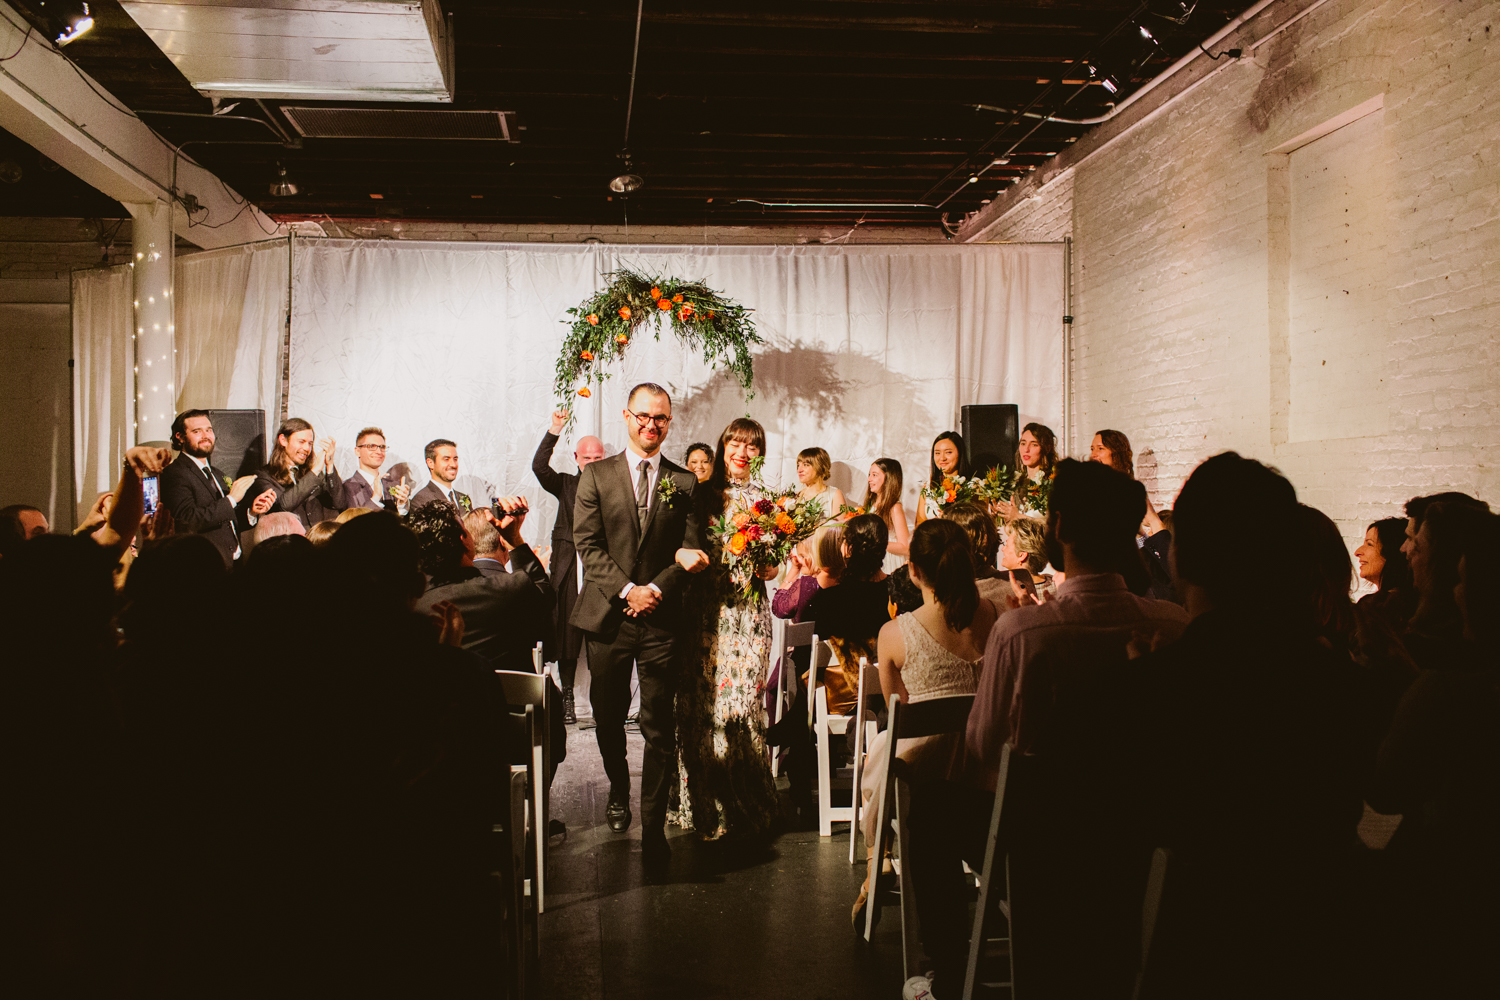 Gowanus-Brooklyn-wedding-uniquelapin-59.jpg